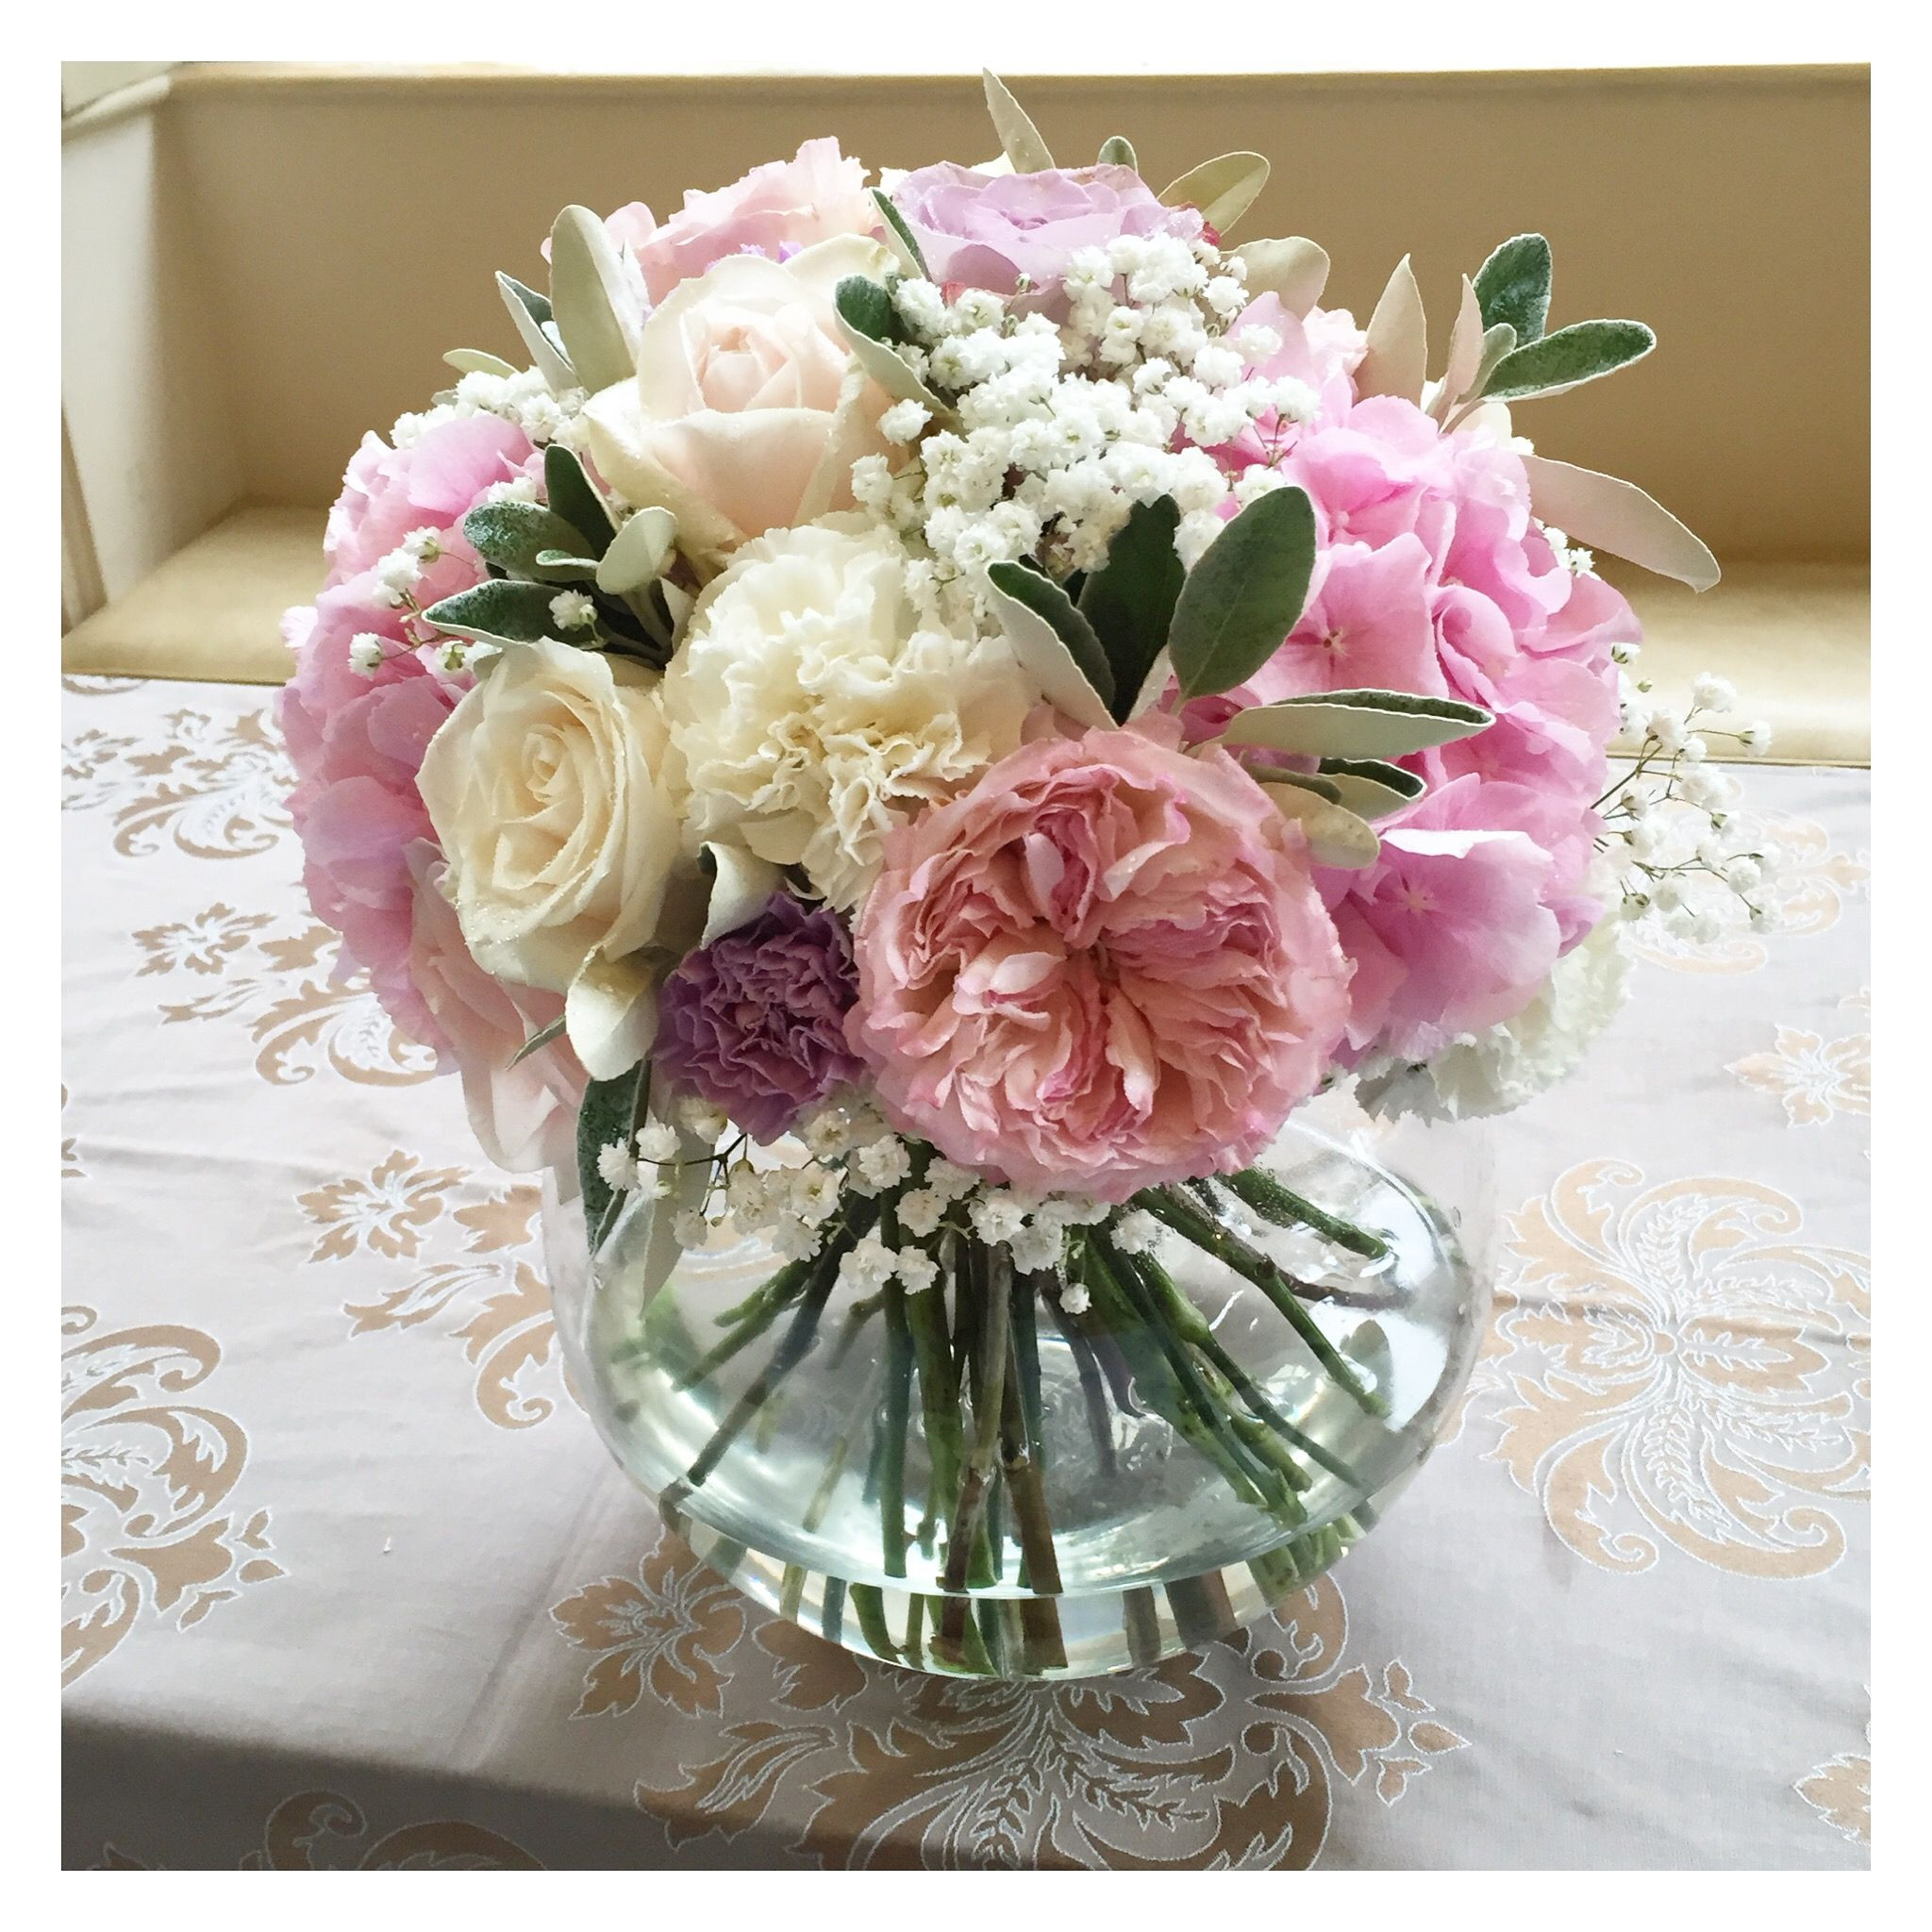 Pink rose hydrangea and peony fish bowl wedding centrepiece Surrey wedding flowers by Boutique Blooms floral design